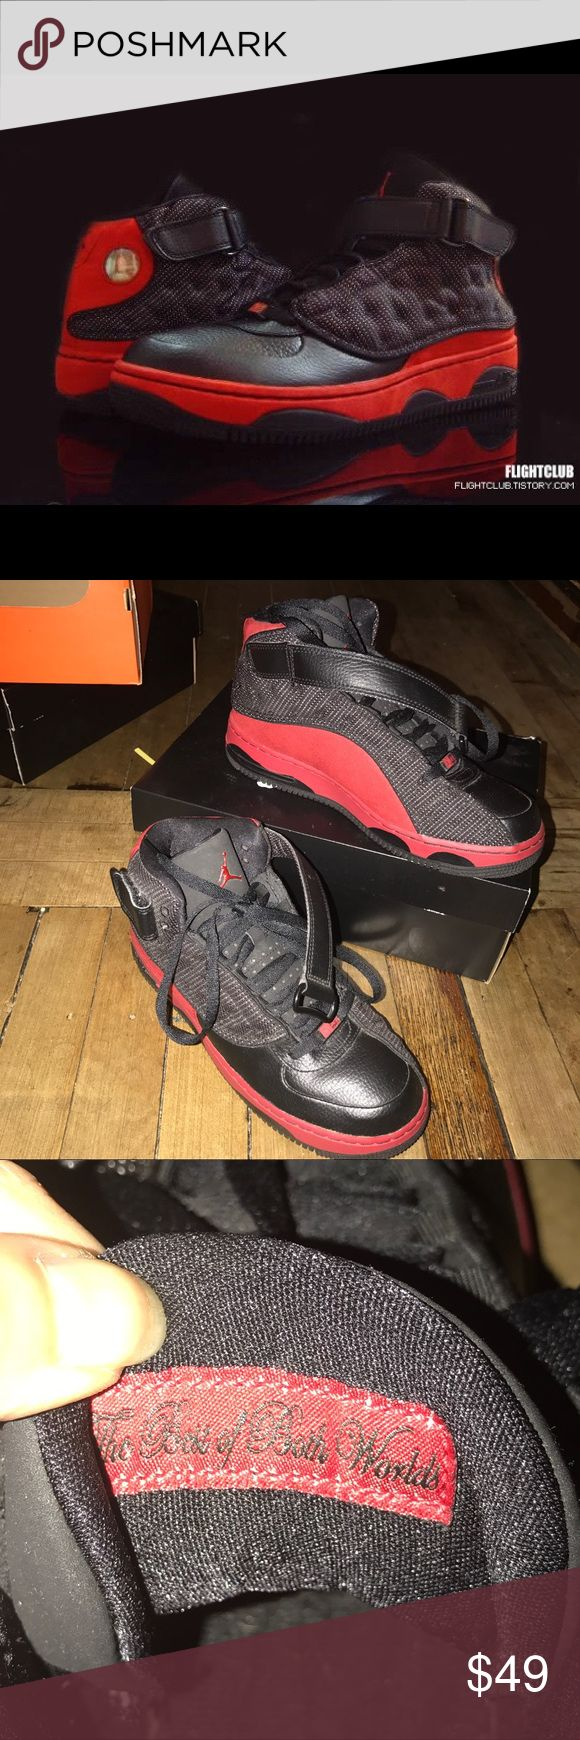 6.5y Grade School Nike Air Jordan's 13 Black and red Retro Jordan's 13 with strap attached. Worn a few times along time ago. Still looks new, it does not come with original box. Jordan Shoes Sneakers